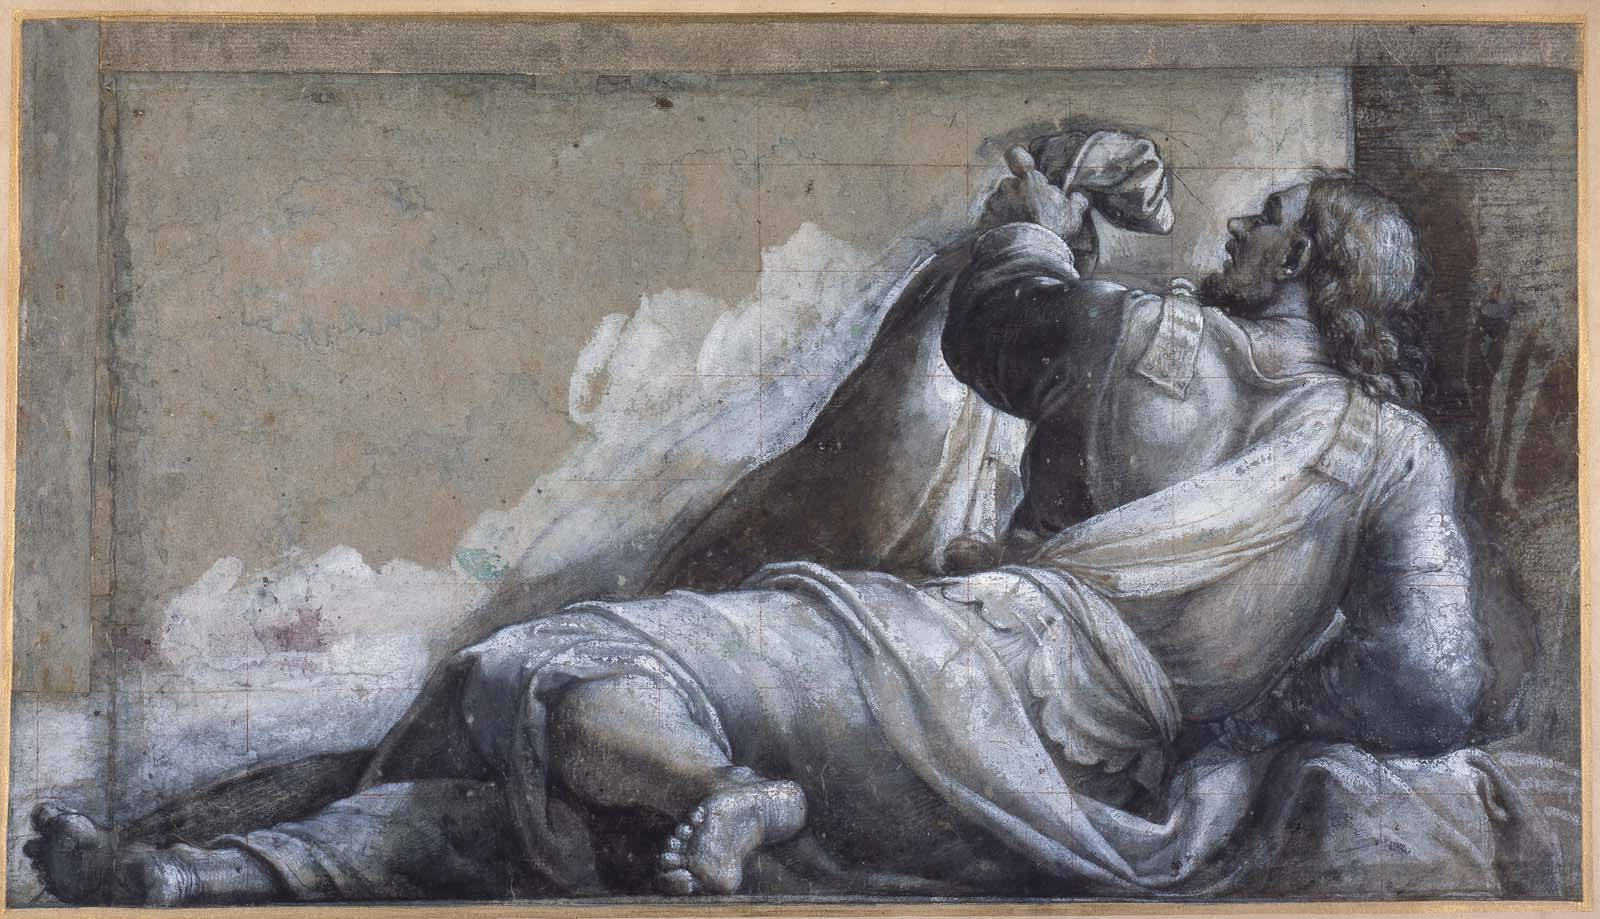 charcoal drawing of a reclining man in robes and armour